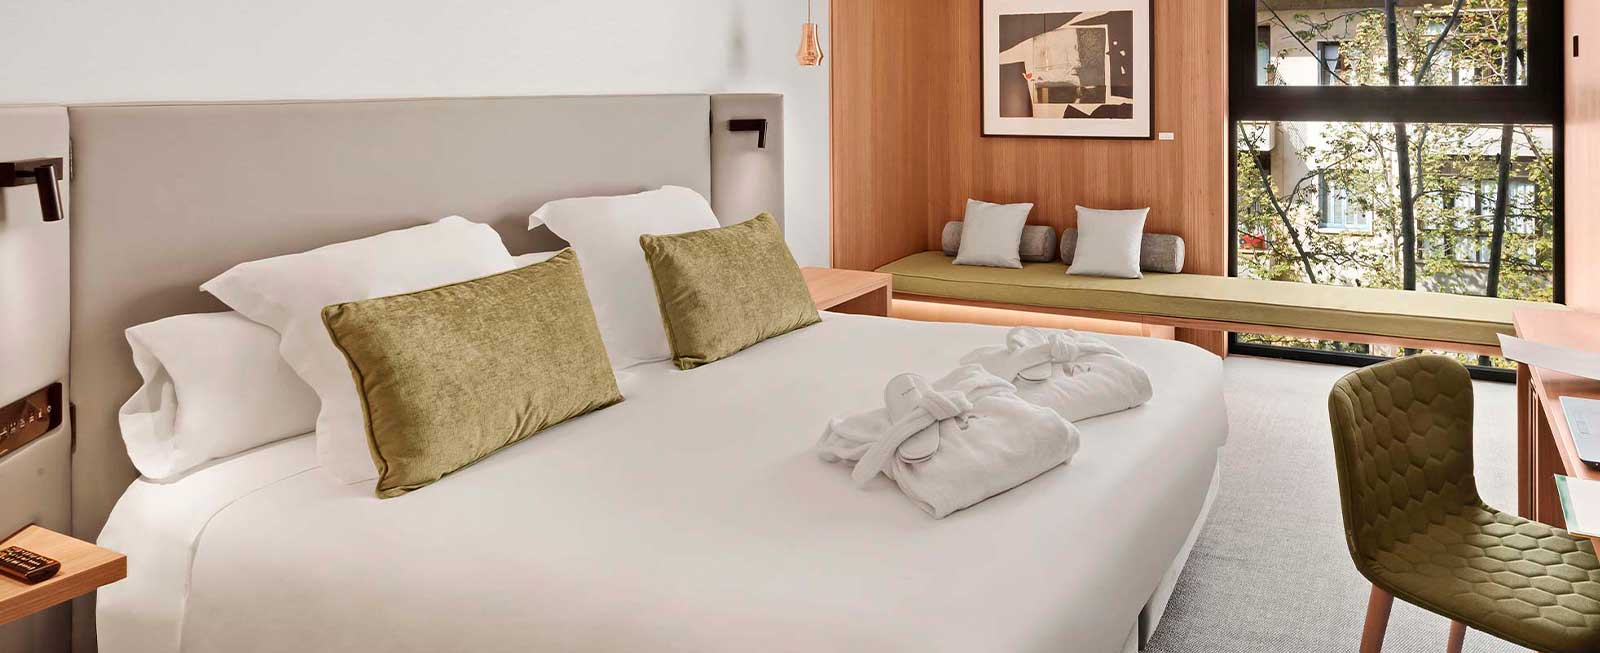 Double communicating room-Protur-Naisa-Palma-hotel